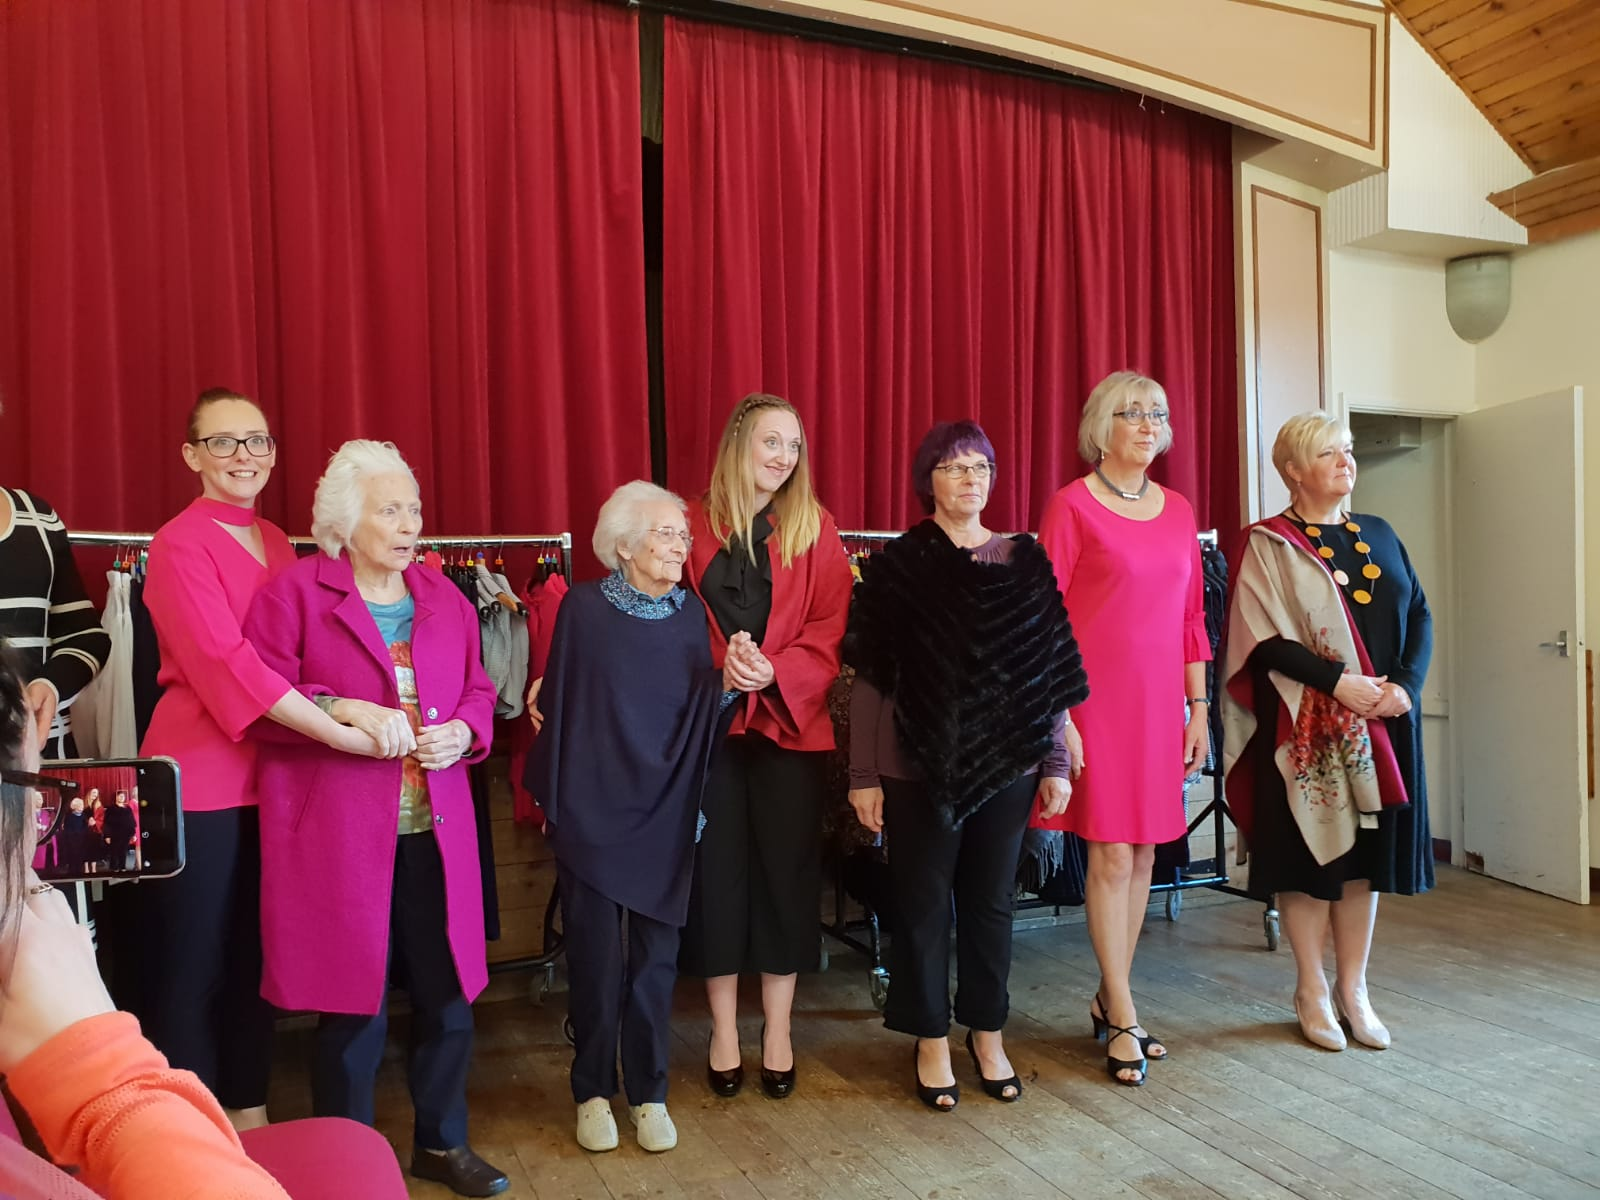 Spring Lodge residential home attended the Artichoke Collection Fashion Show